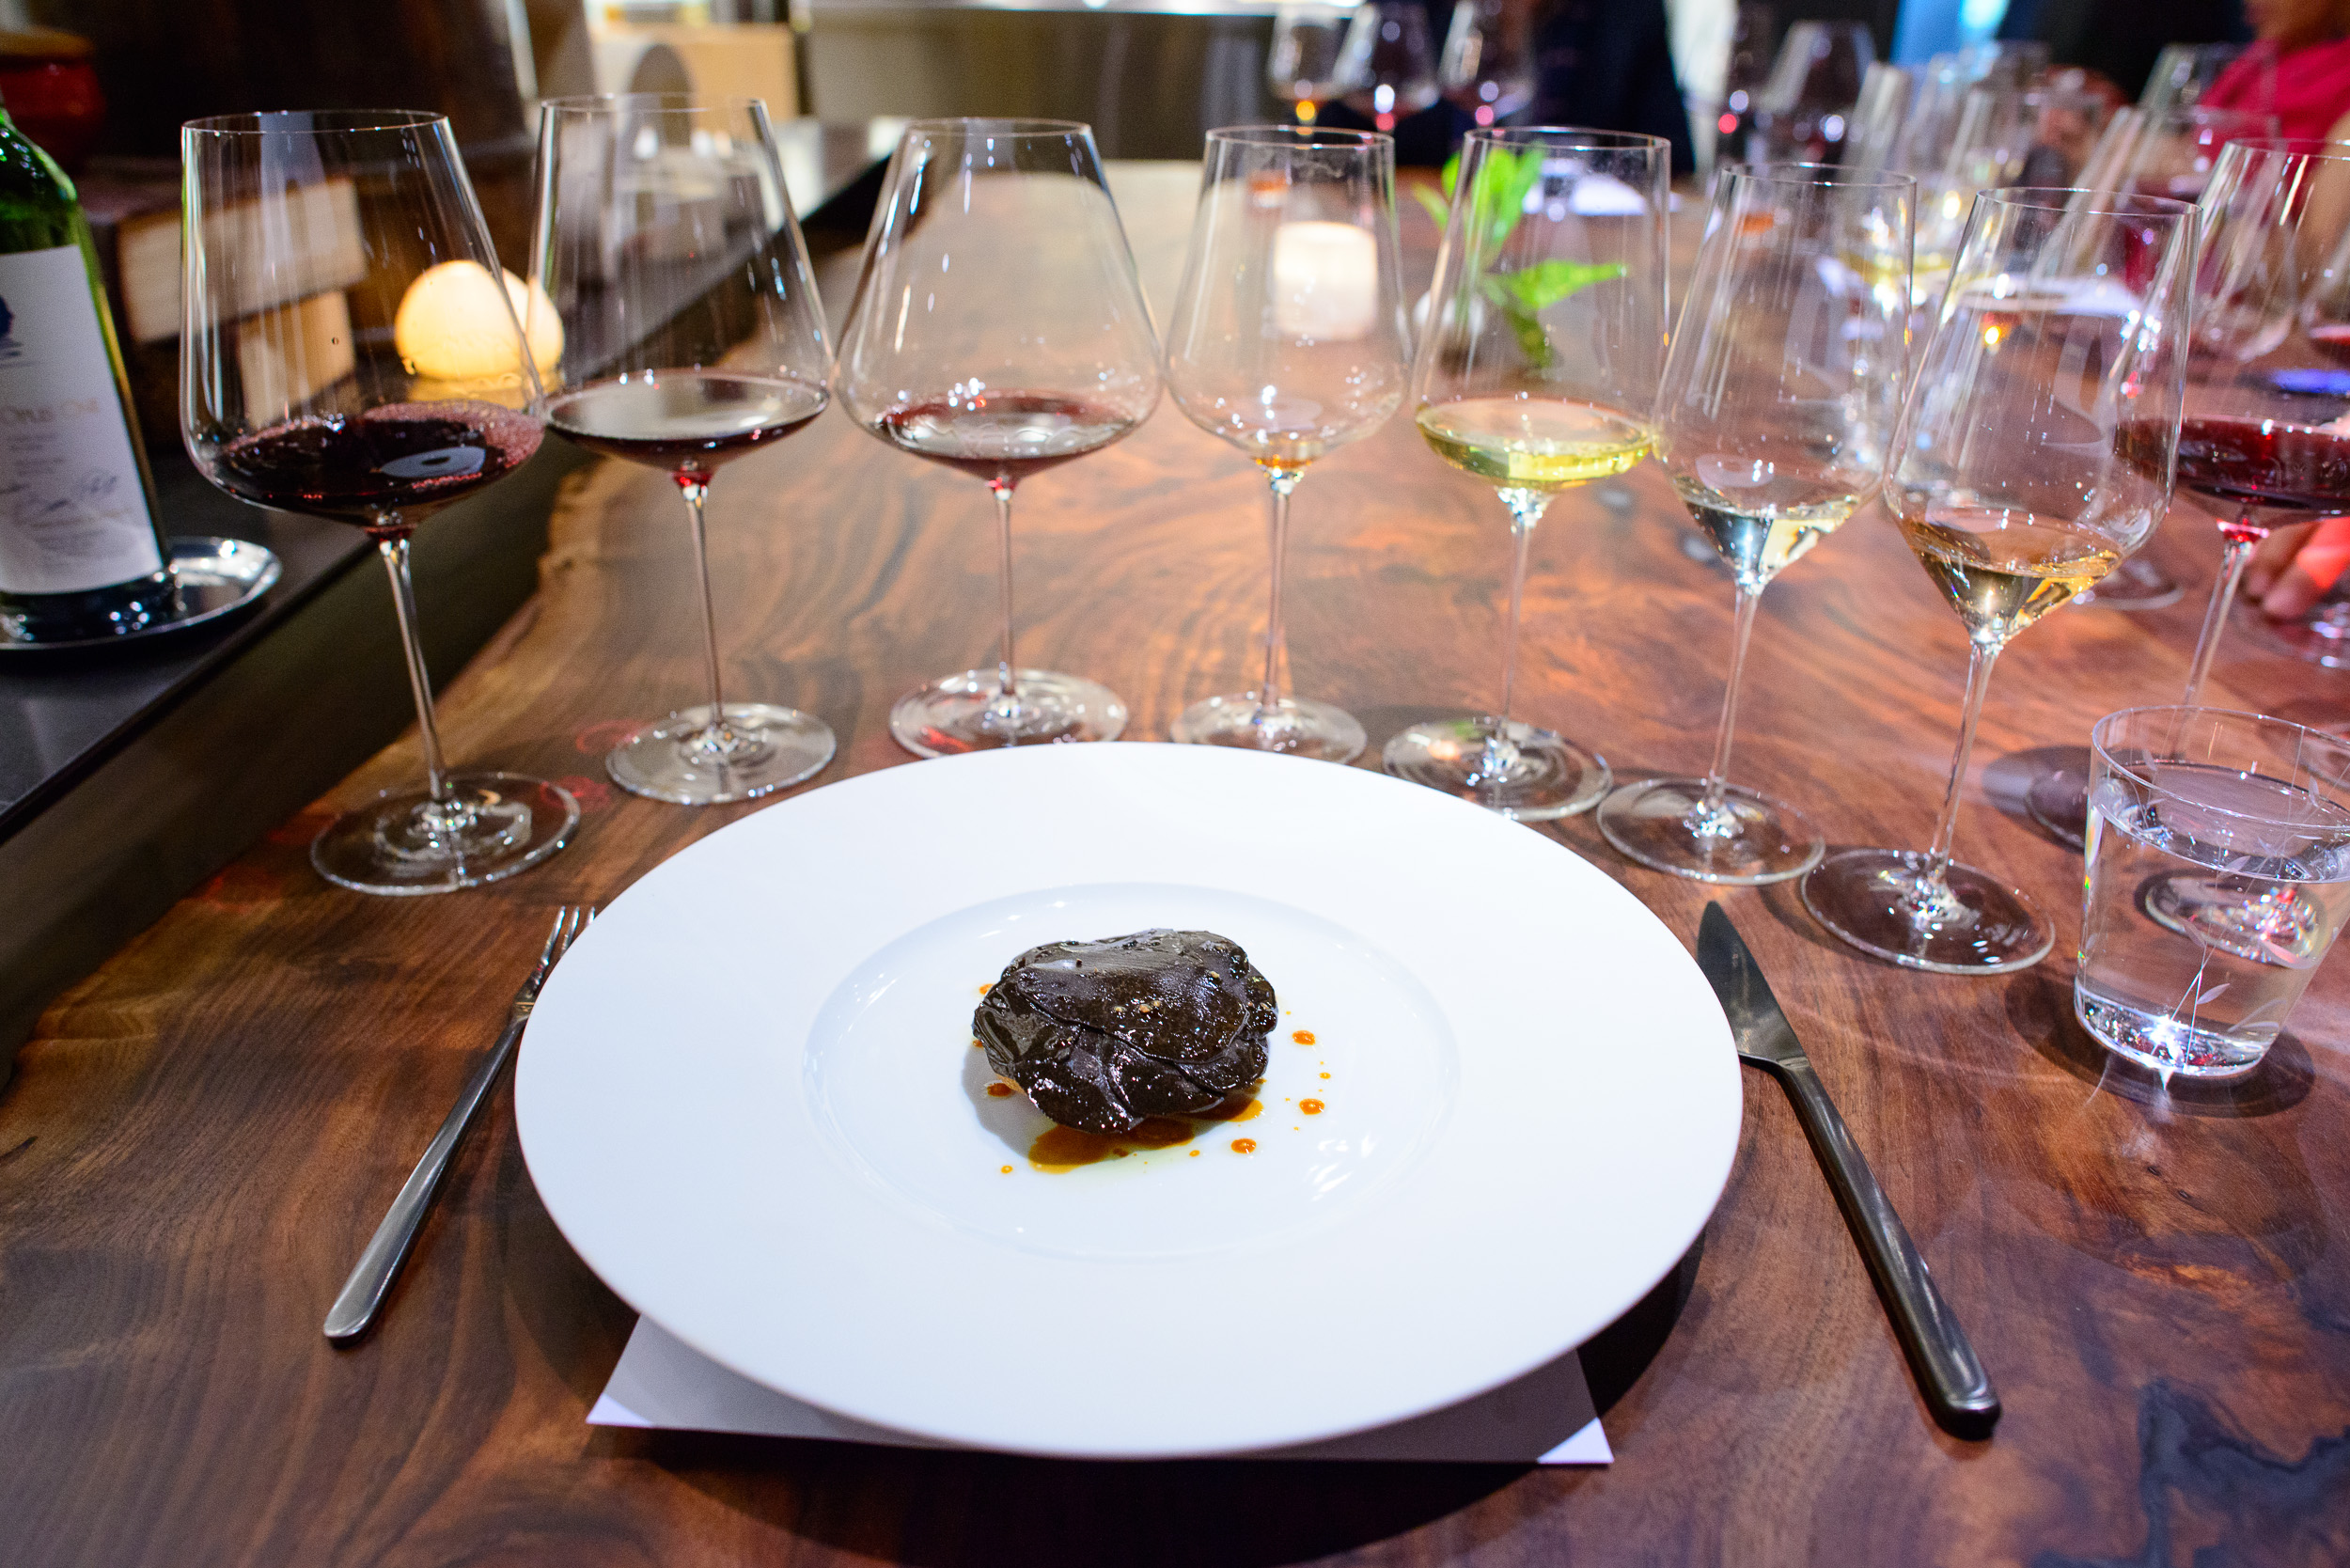 16th Course: Tart of perigord black truffle (slowly grilled in a